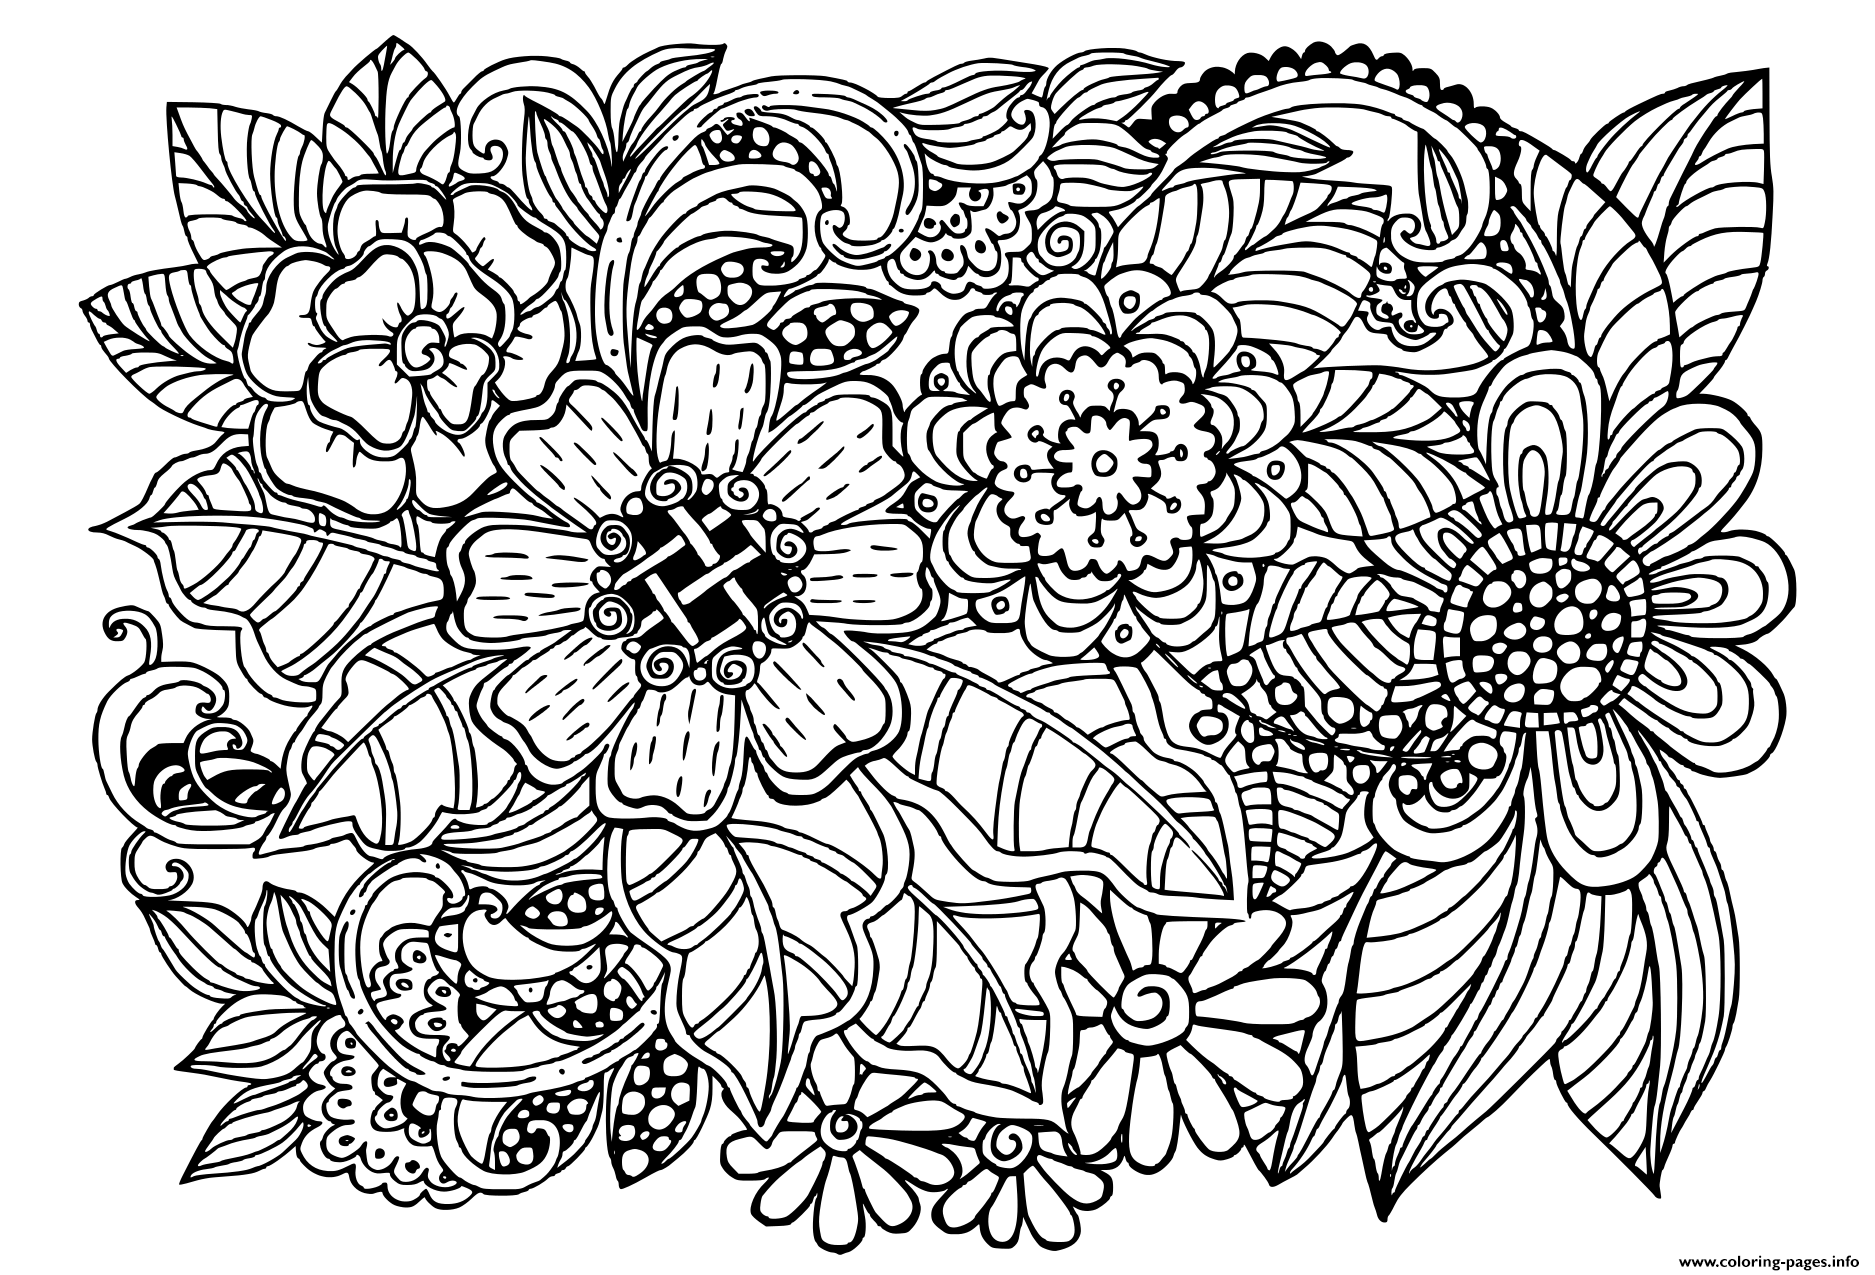 Pattern Coloring Books For Adults